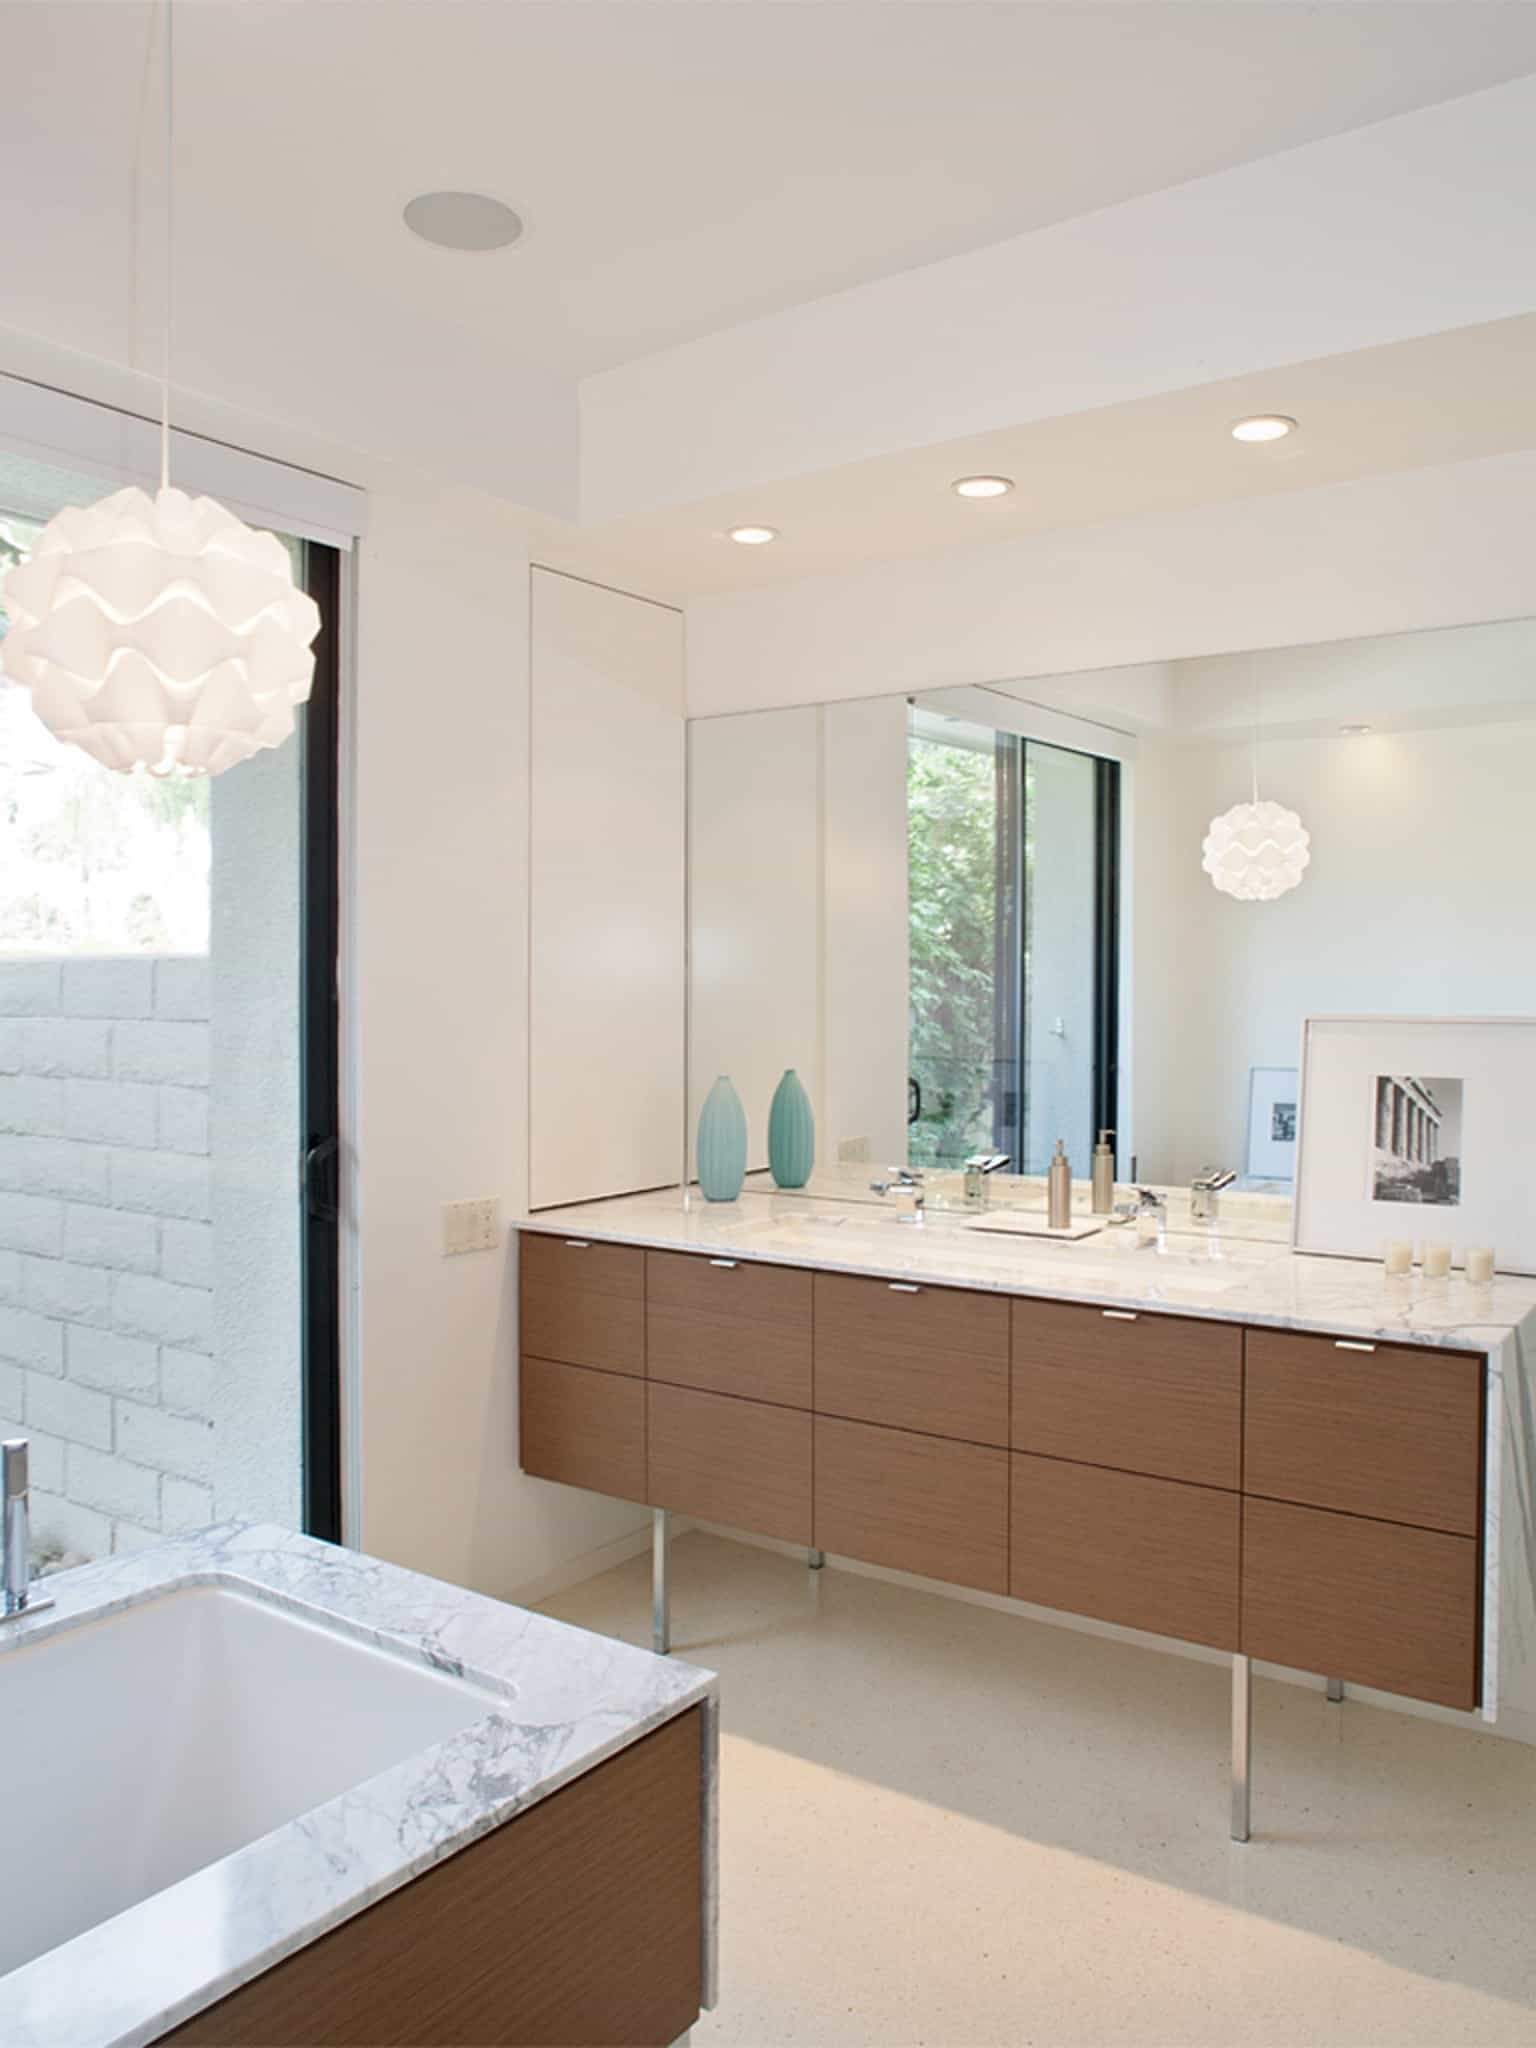 Midcentury Modern Feel Bathroom Design For  (Image 20 of 29)